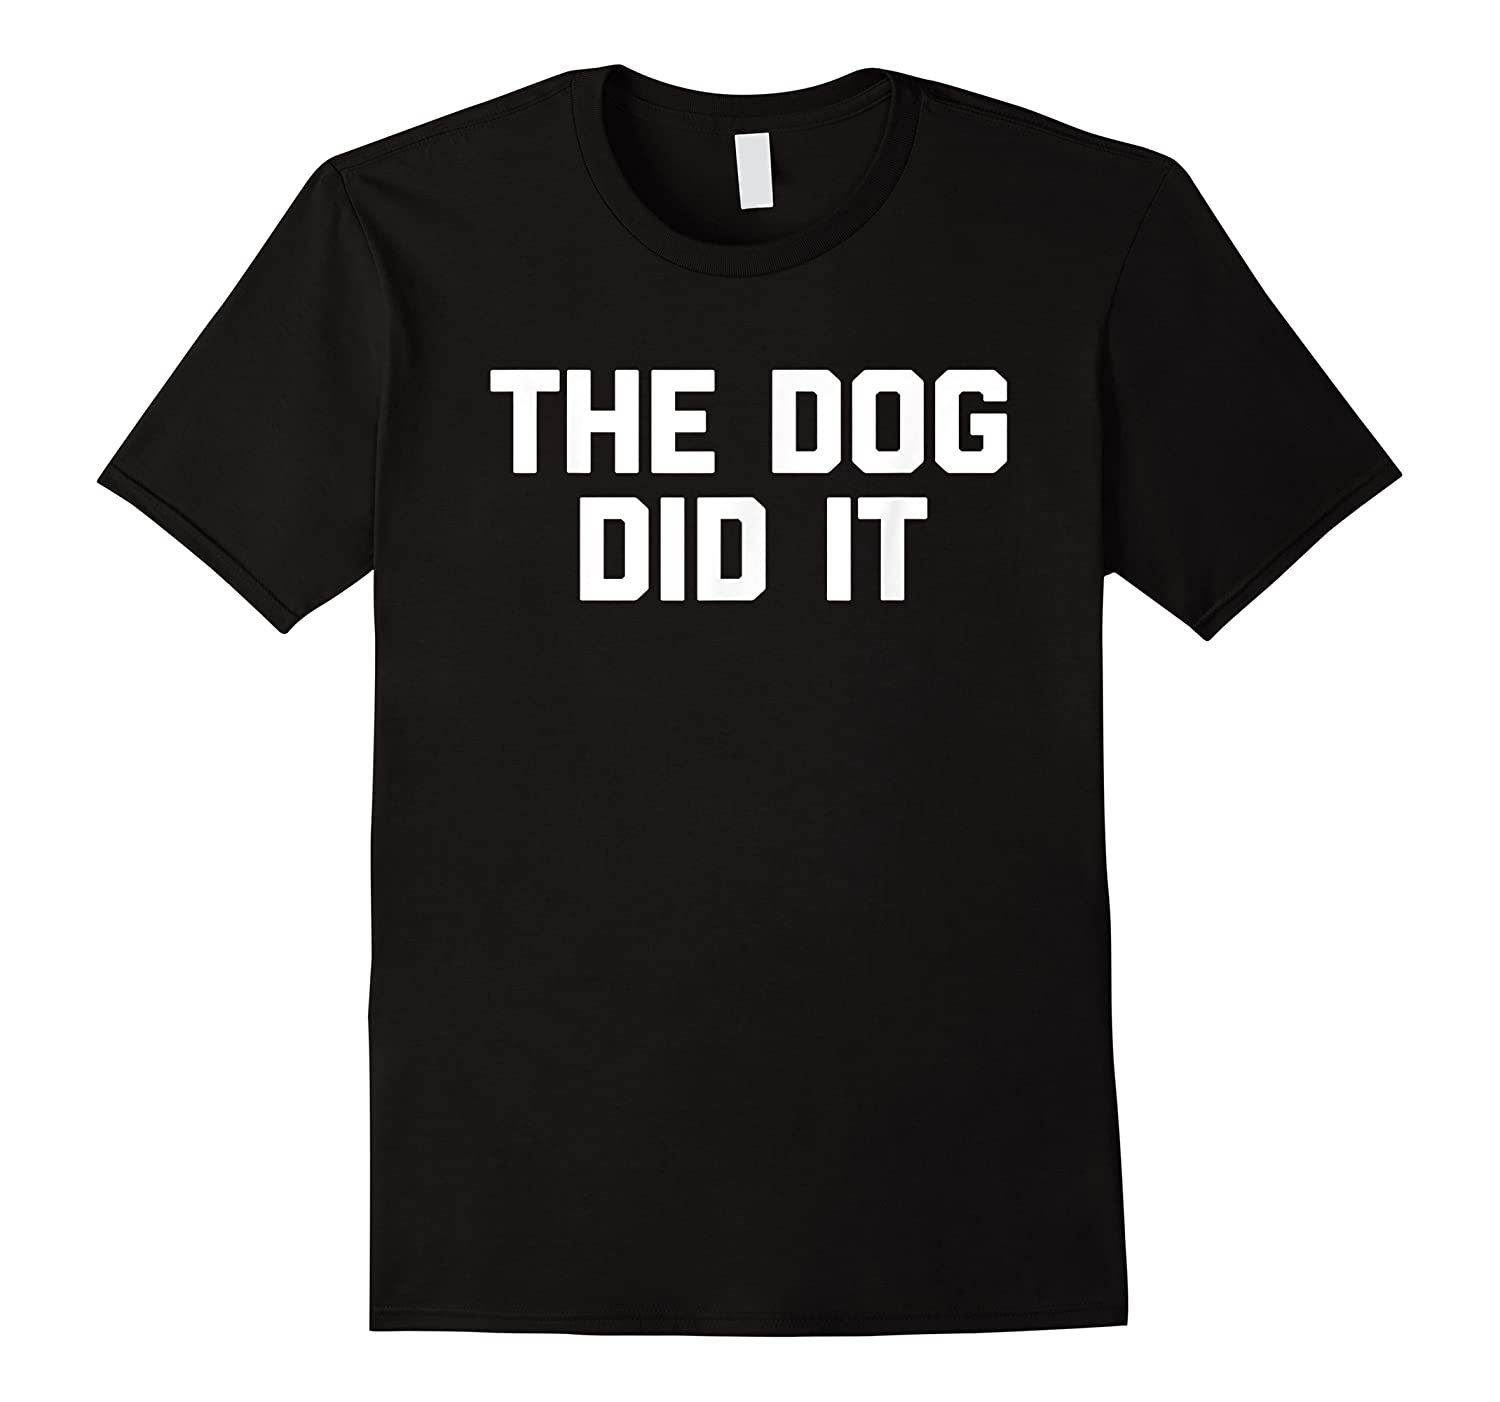 The Dog Did It Funny Dog Dogs Funny Saying Shirts